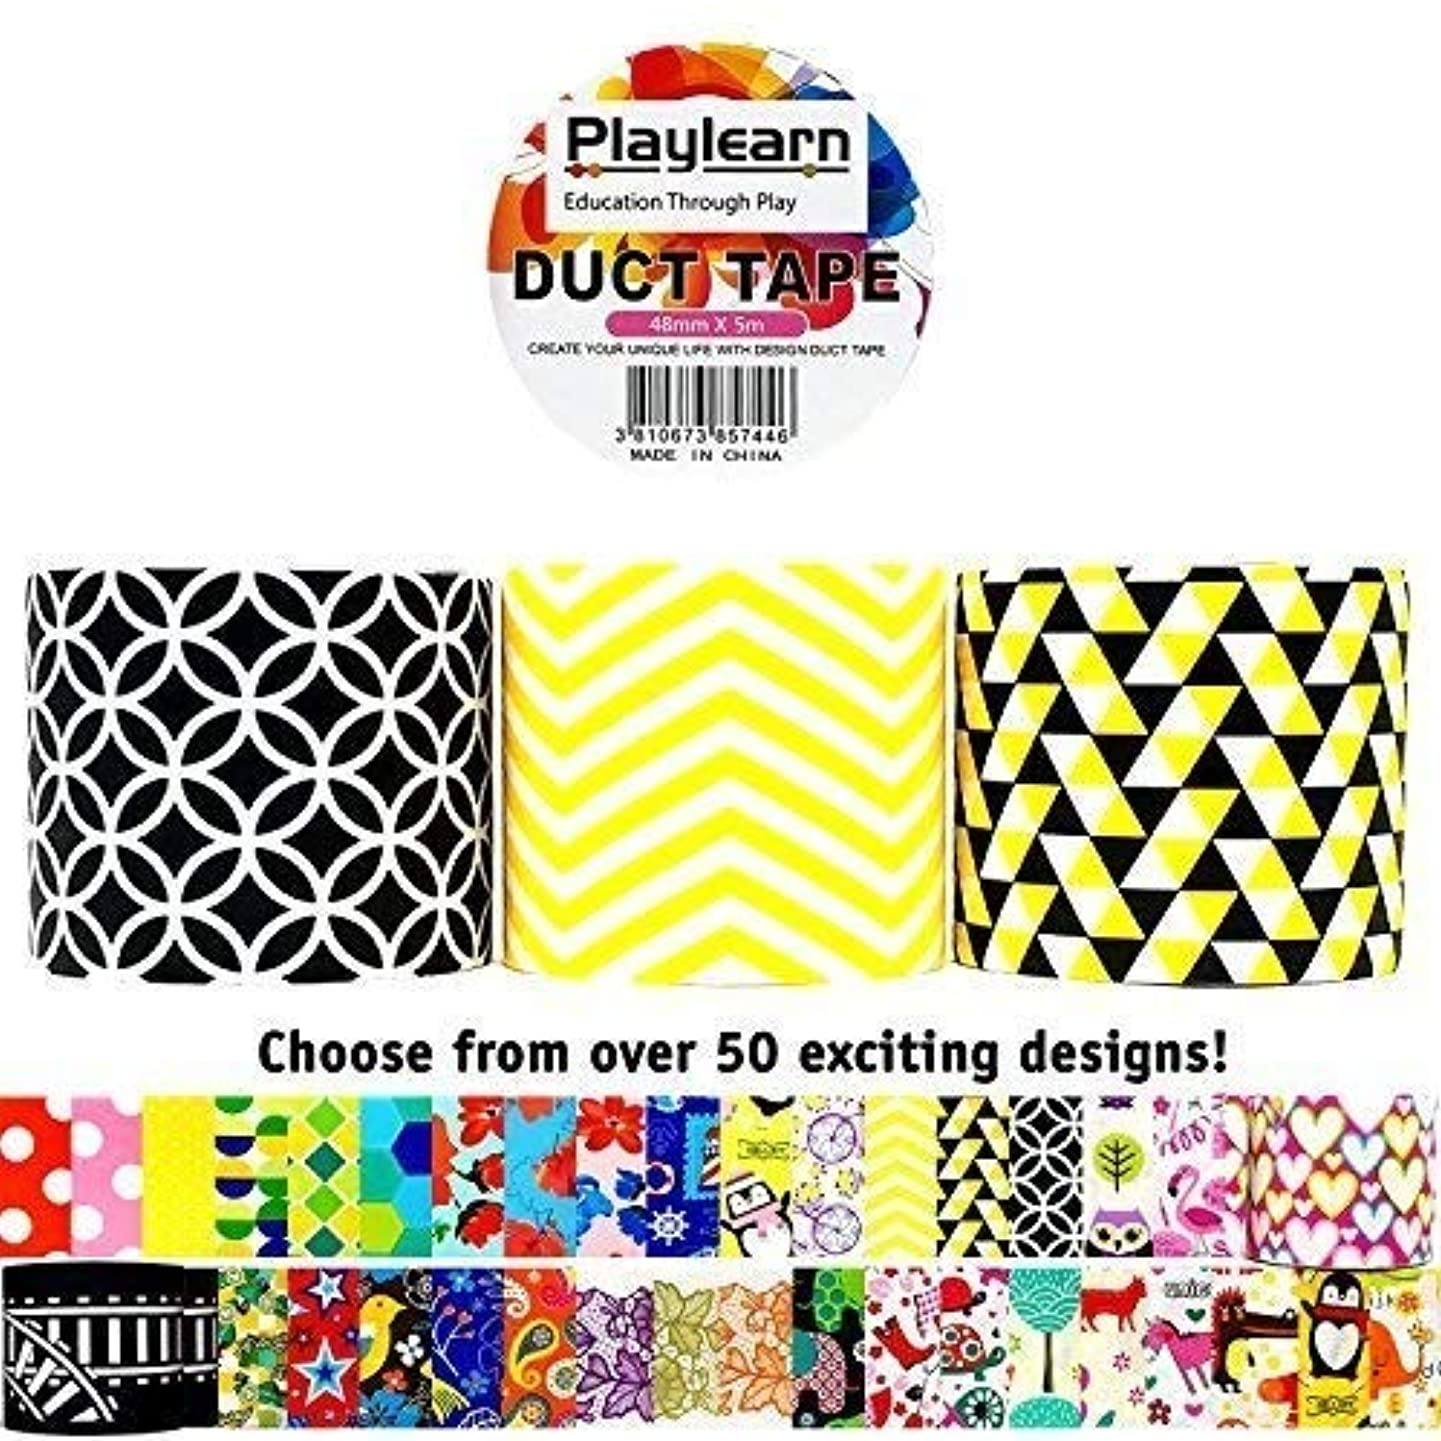 Design Duct Tape 48mm x 16 Feet - Kids Fun Extra Strong Printed Arts & Crafts Multi Pack - by Playlearn (Black & Gold)